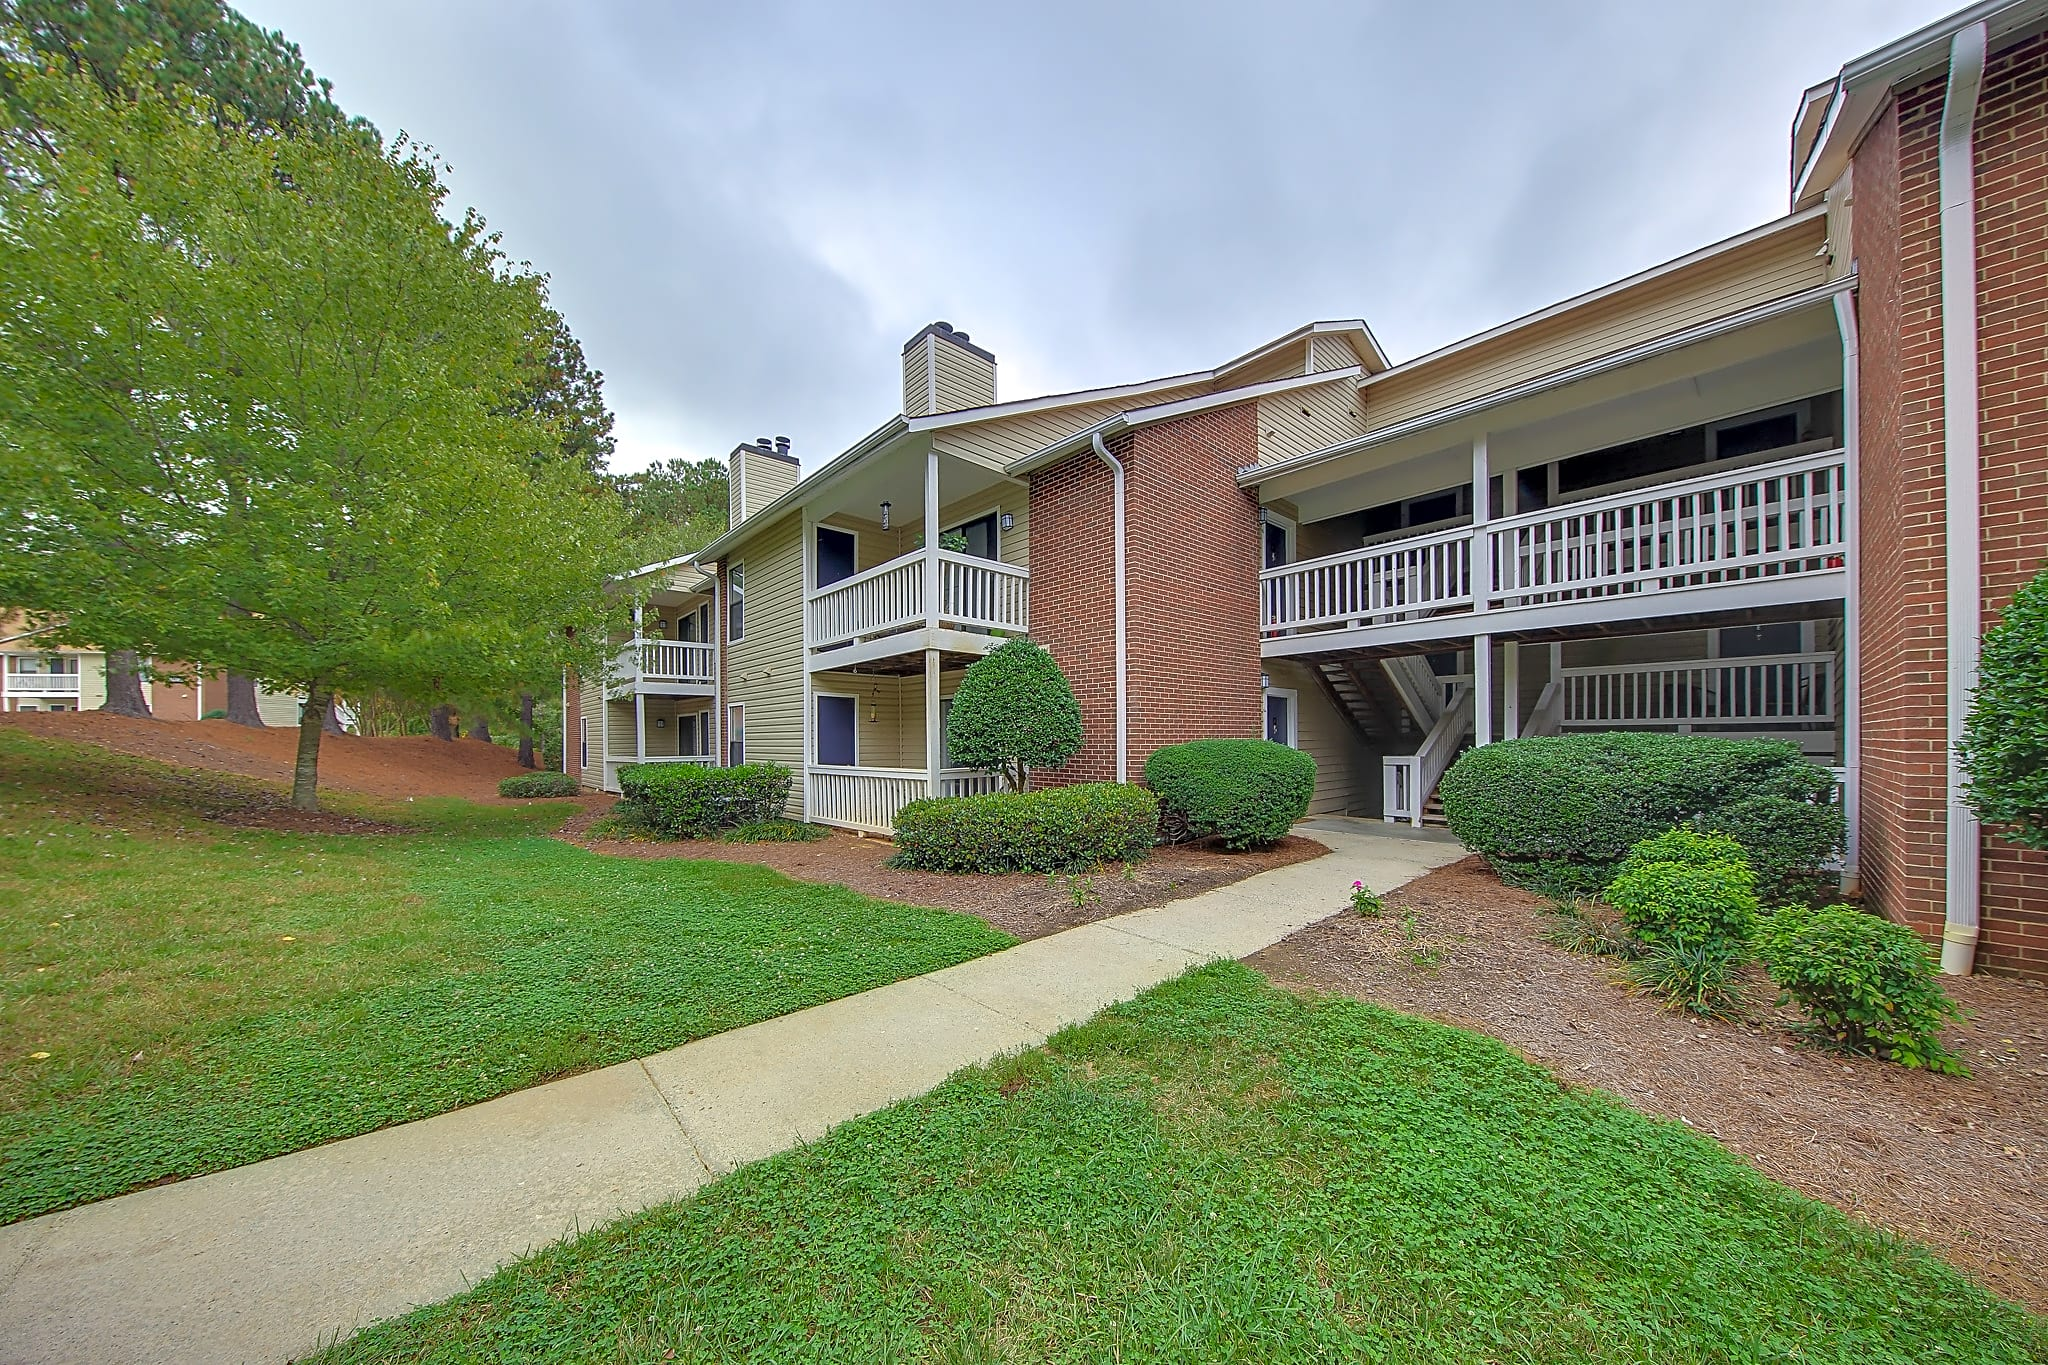 Apartments Near Guilford Terrace Oaks for Guilford College Students in Greensboro, NC